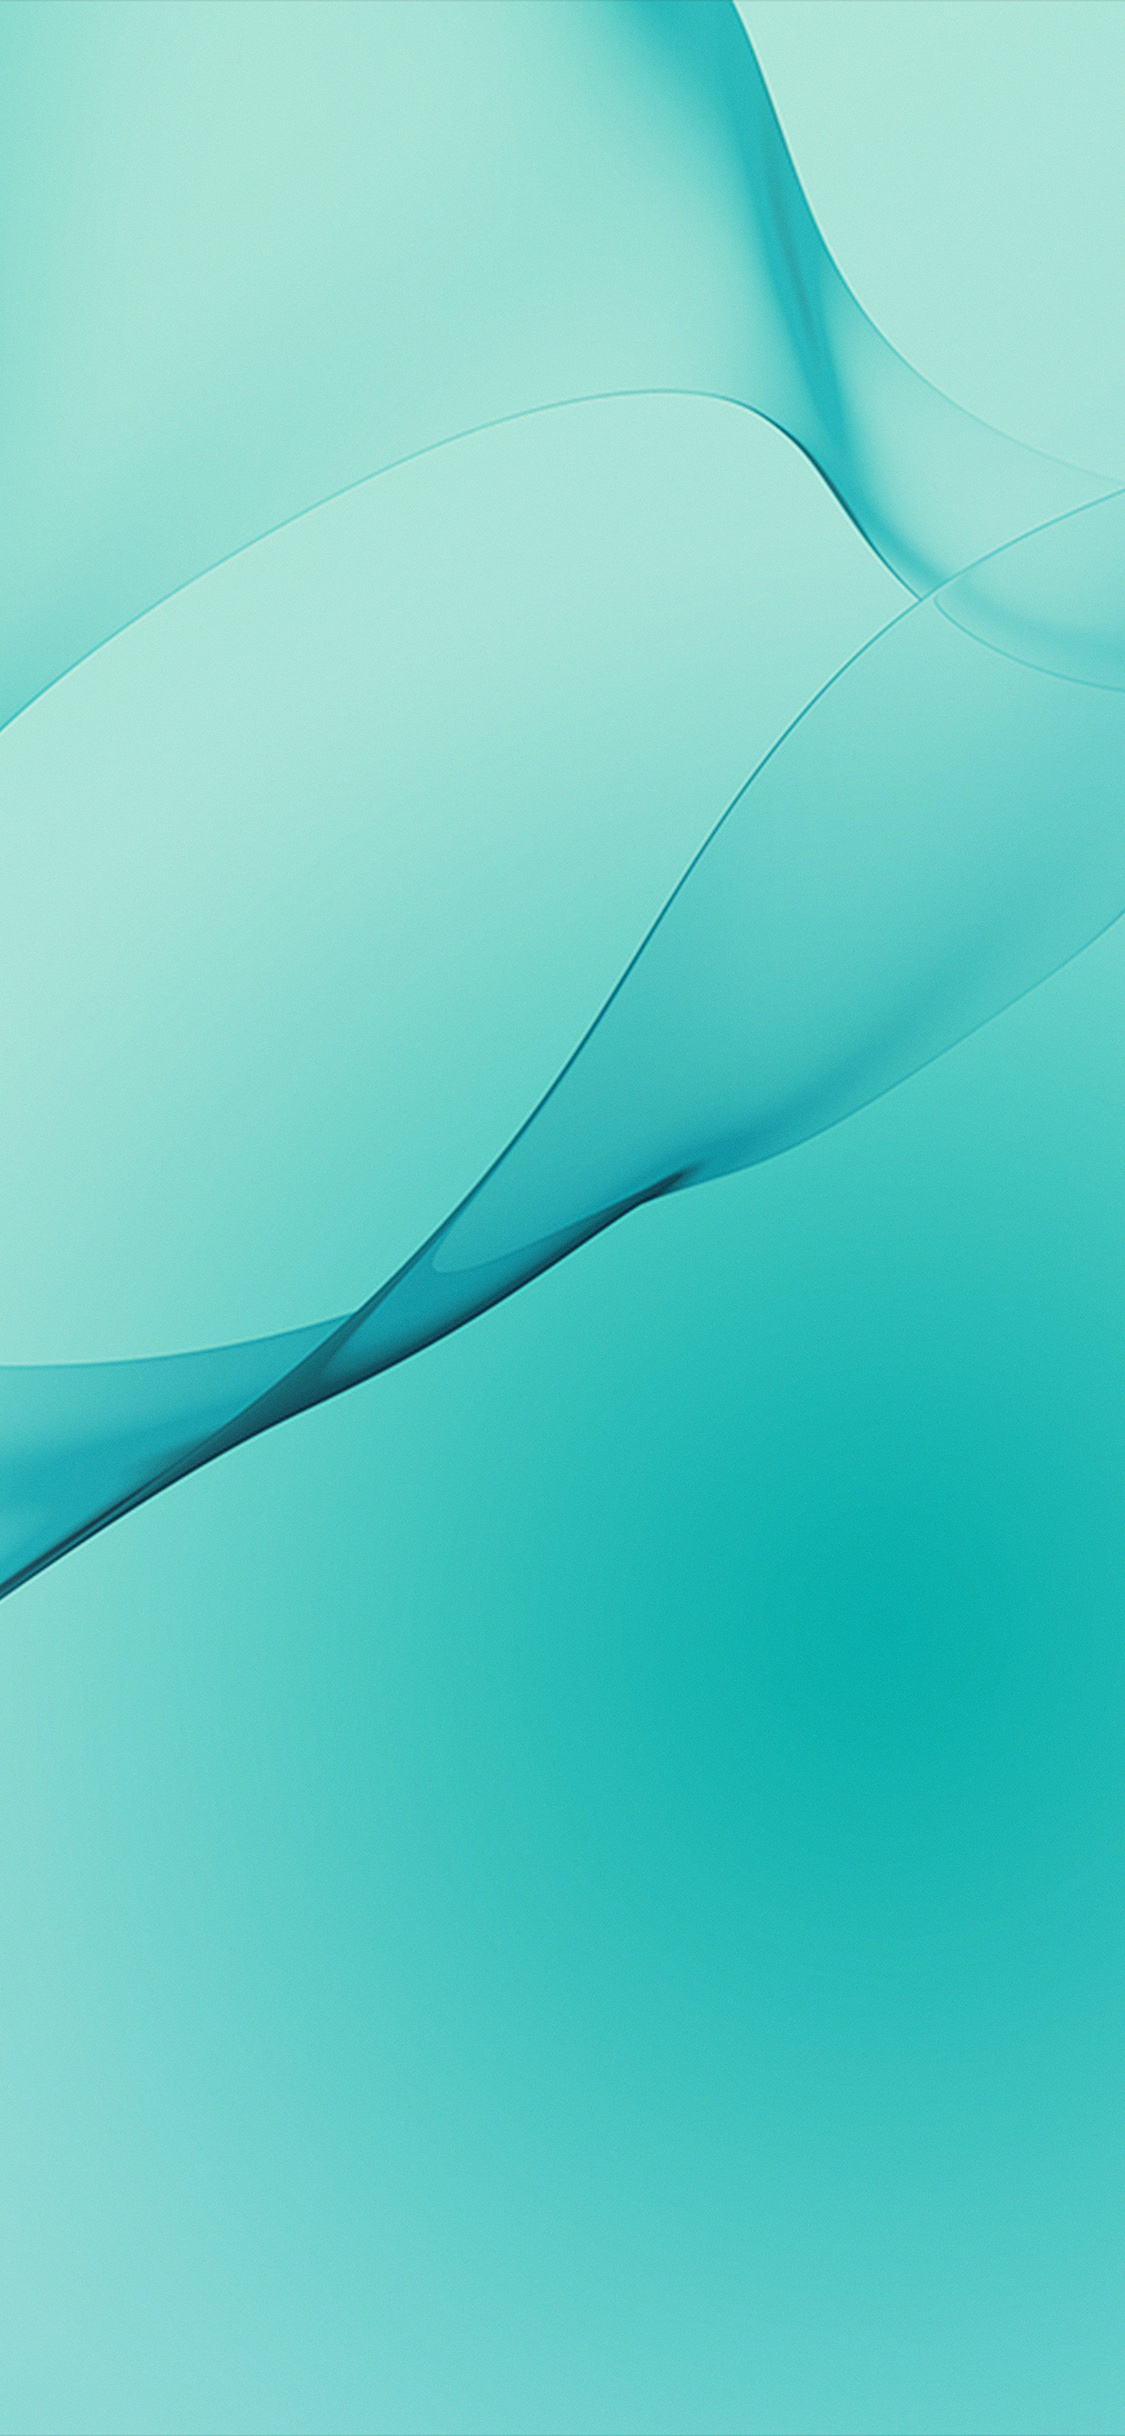 iPhoneXpapers.com-Apple-iPhone-wallpaper-vm19-abstract-blue-white-rhytm-pattern